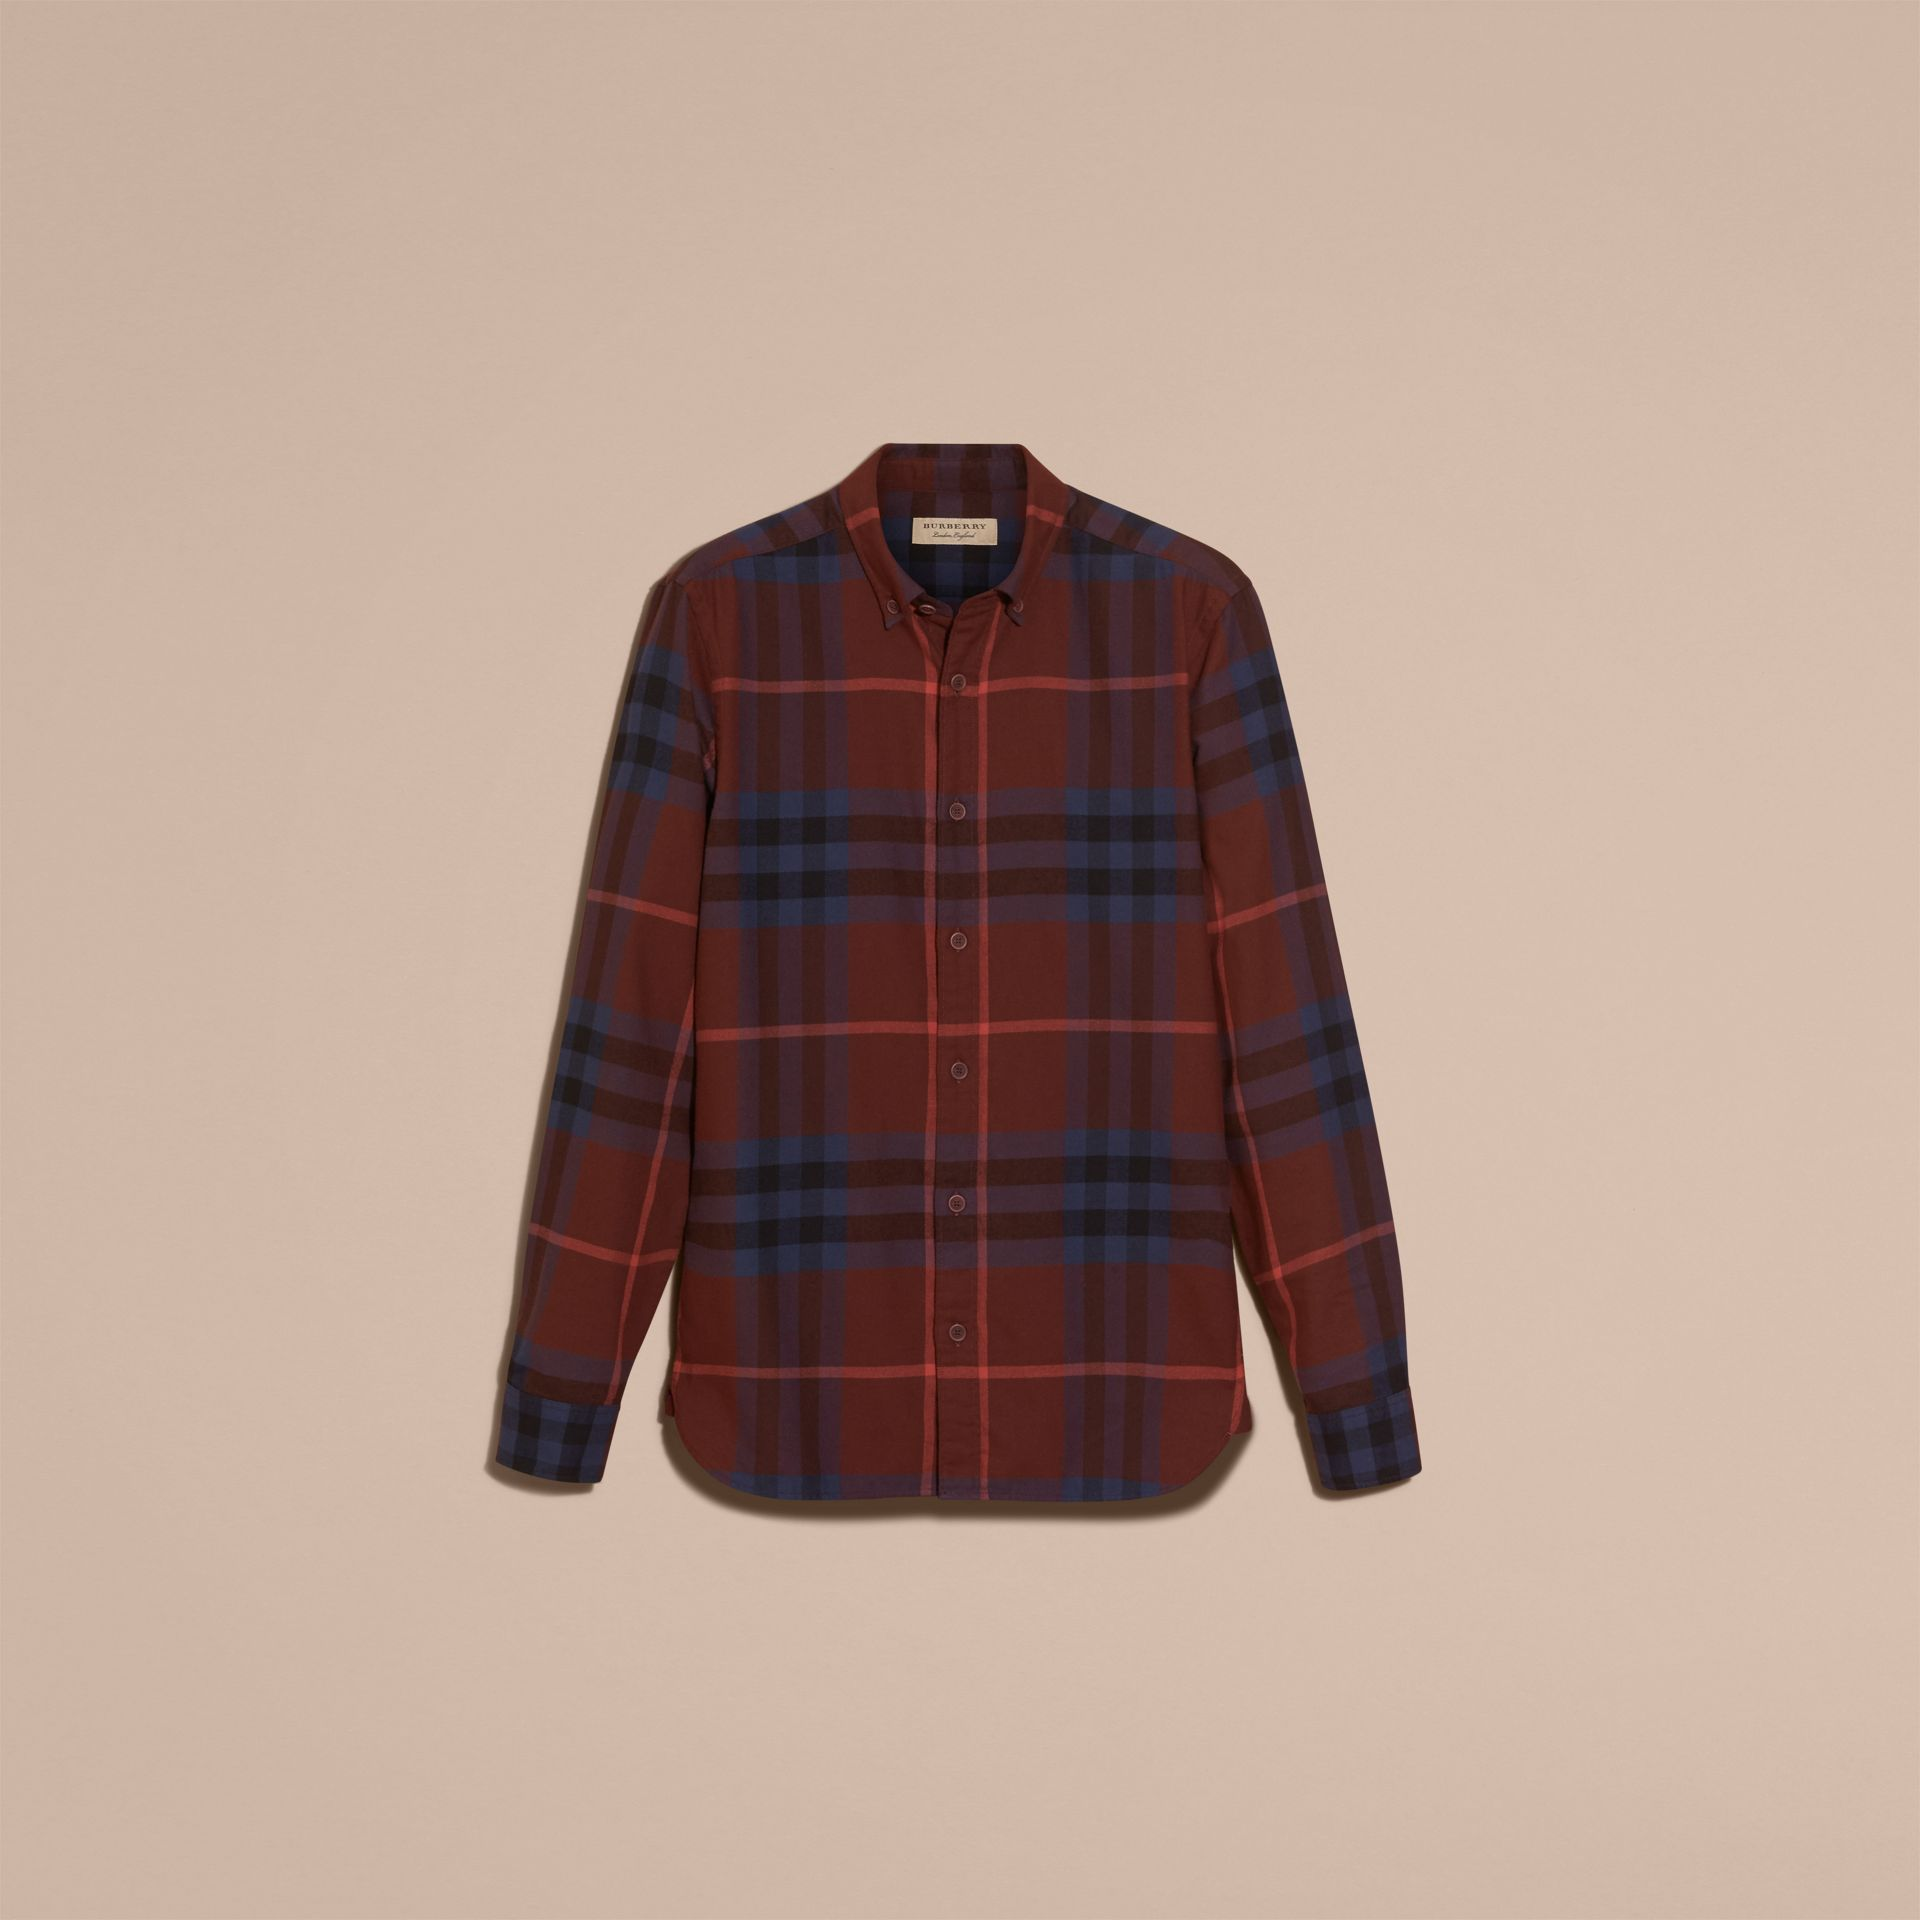 Dark elderberry Check Cotton Flannel Shirt Dark Elderberry - gallery image 4